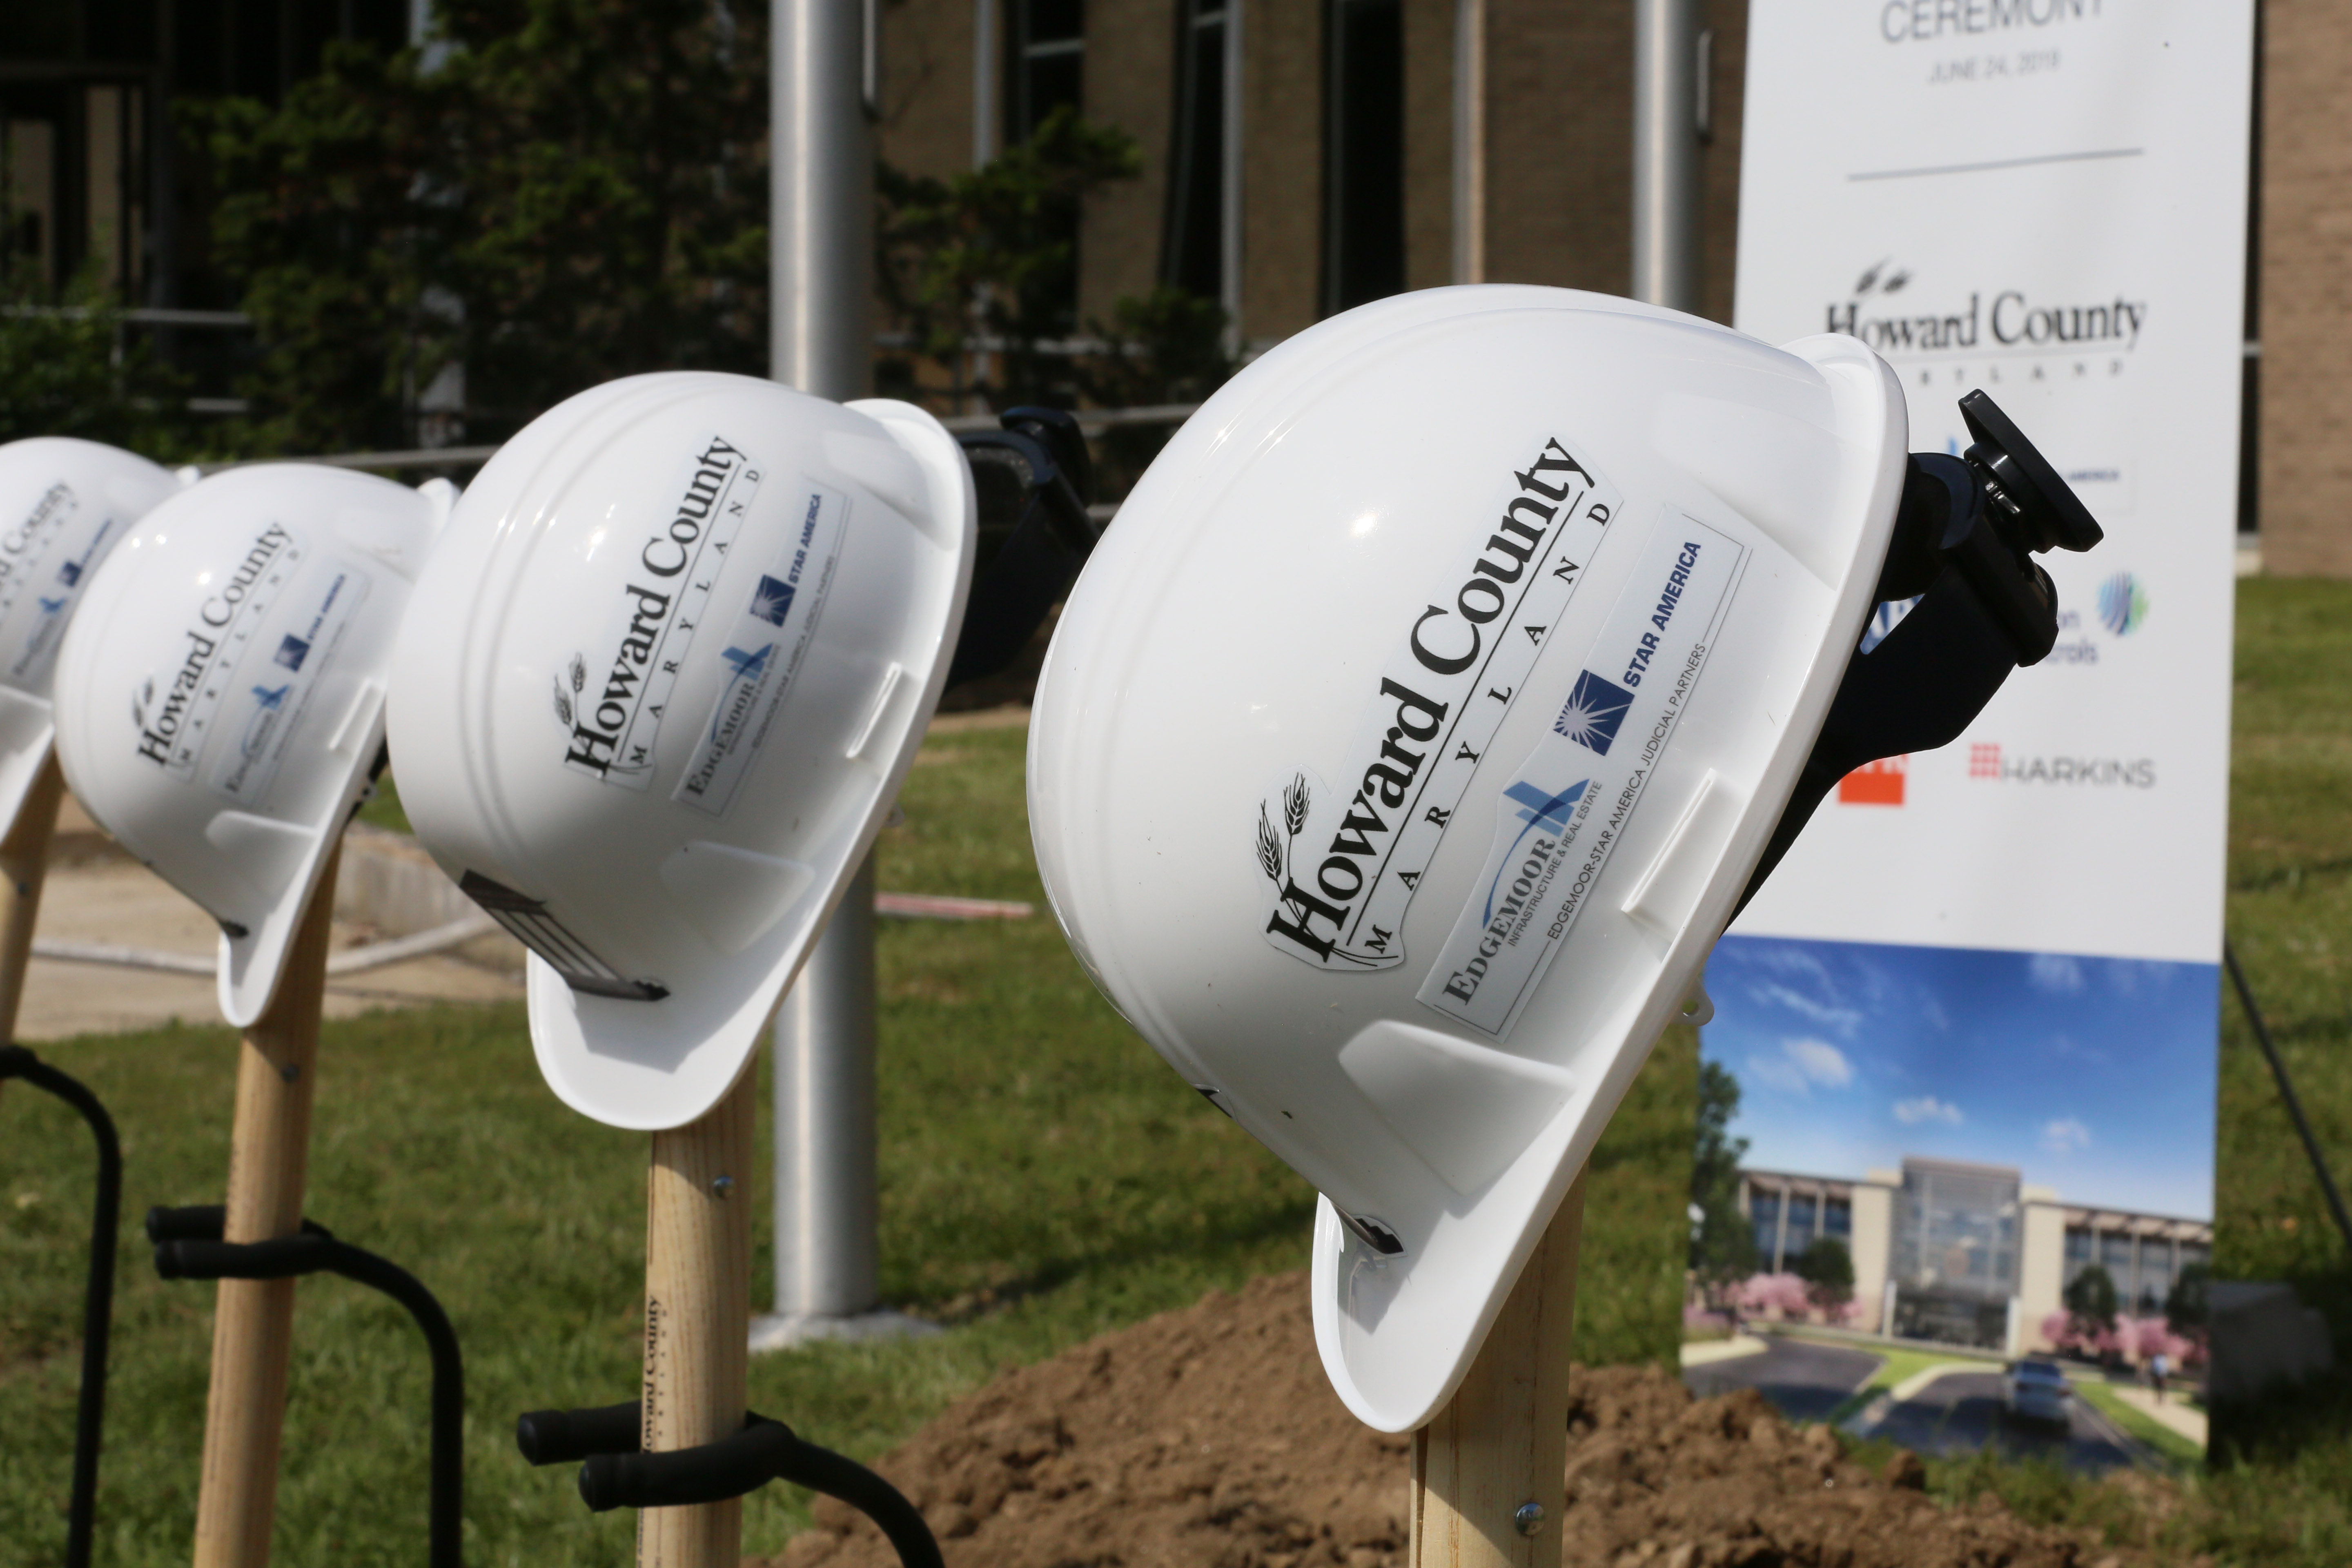 On June 24, 2019, Edgemoor-Star America Judicial Partners broke ground on the public-private partnership (P3) with Howard County to develop and operate a new circuit courthouse for the County...